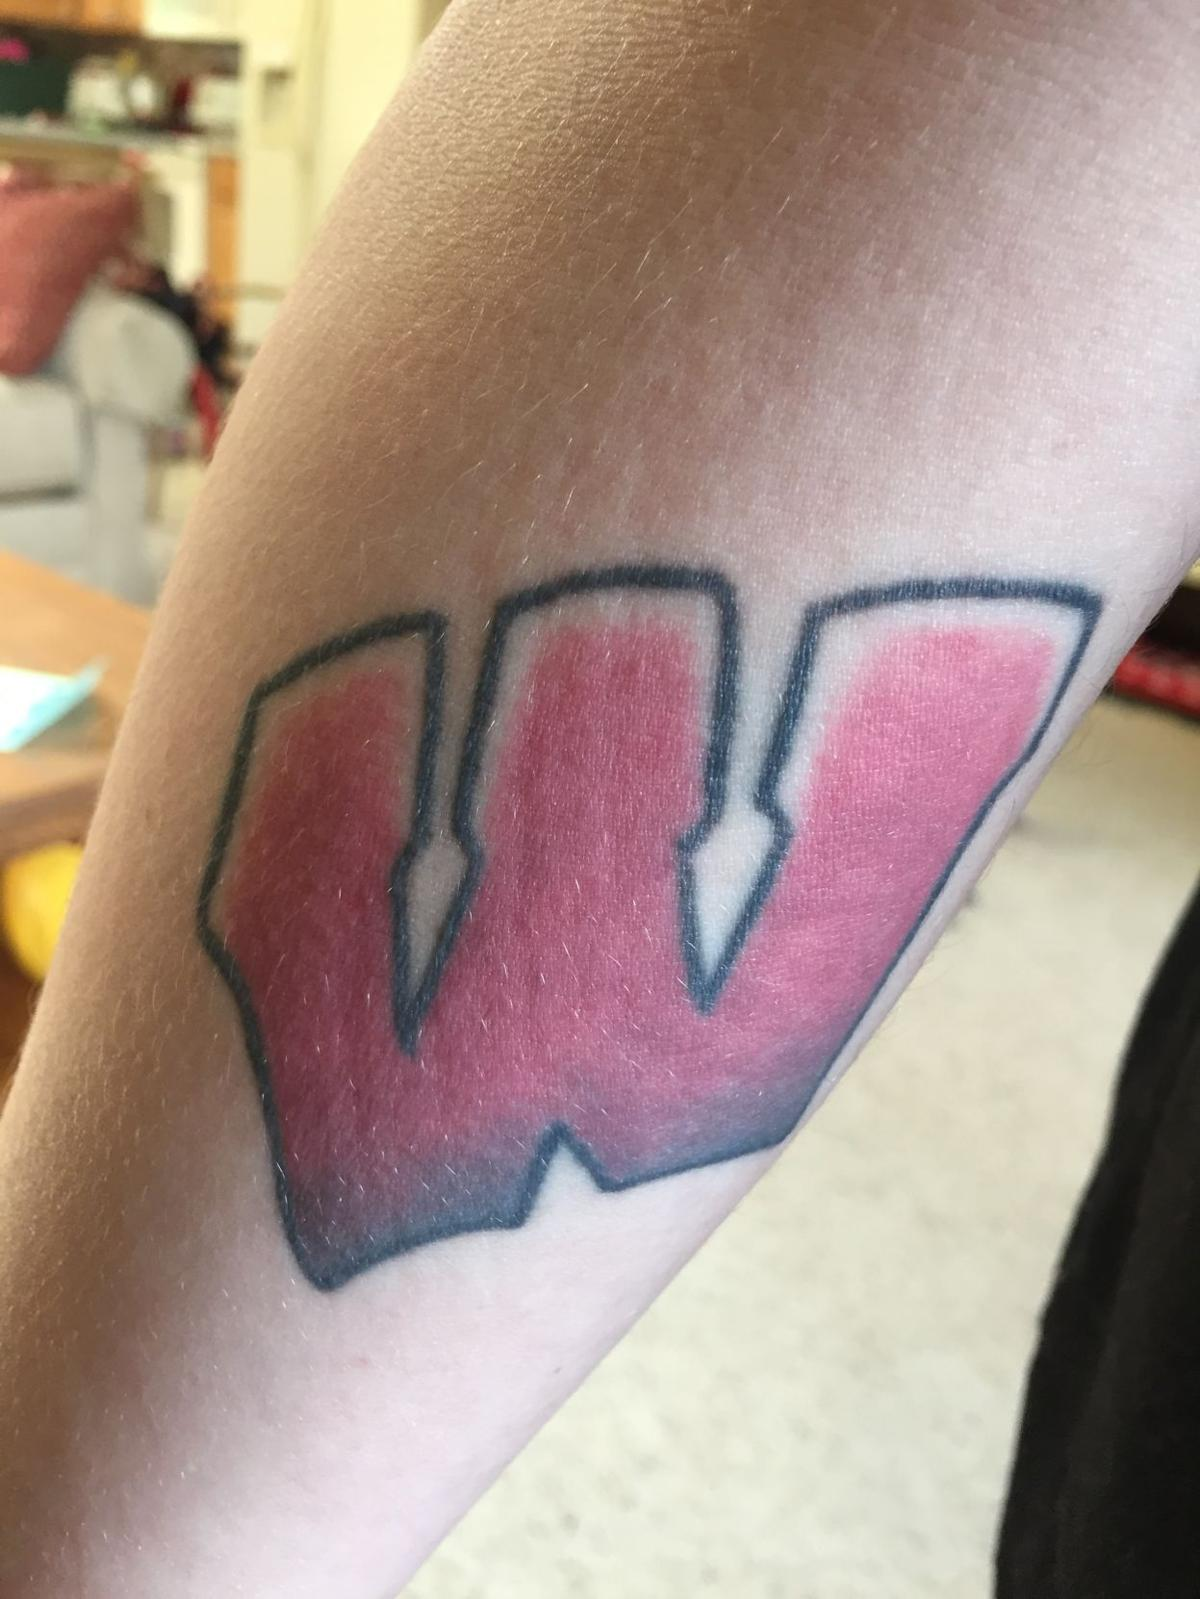 Photos These People Love Wisconsin So Much They Said It In Ink